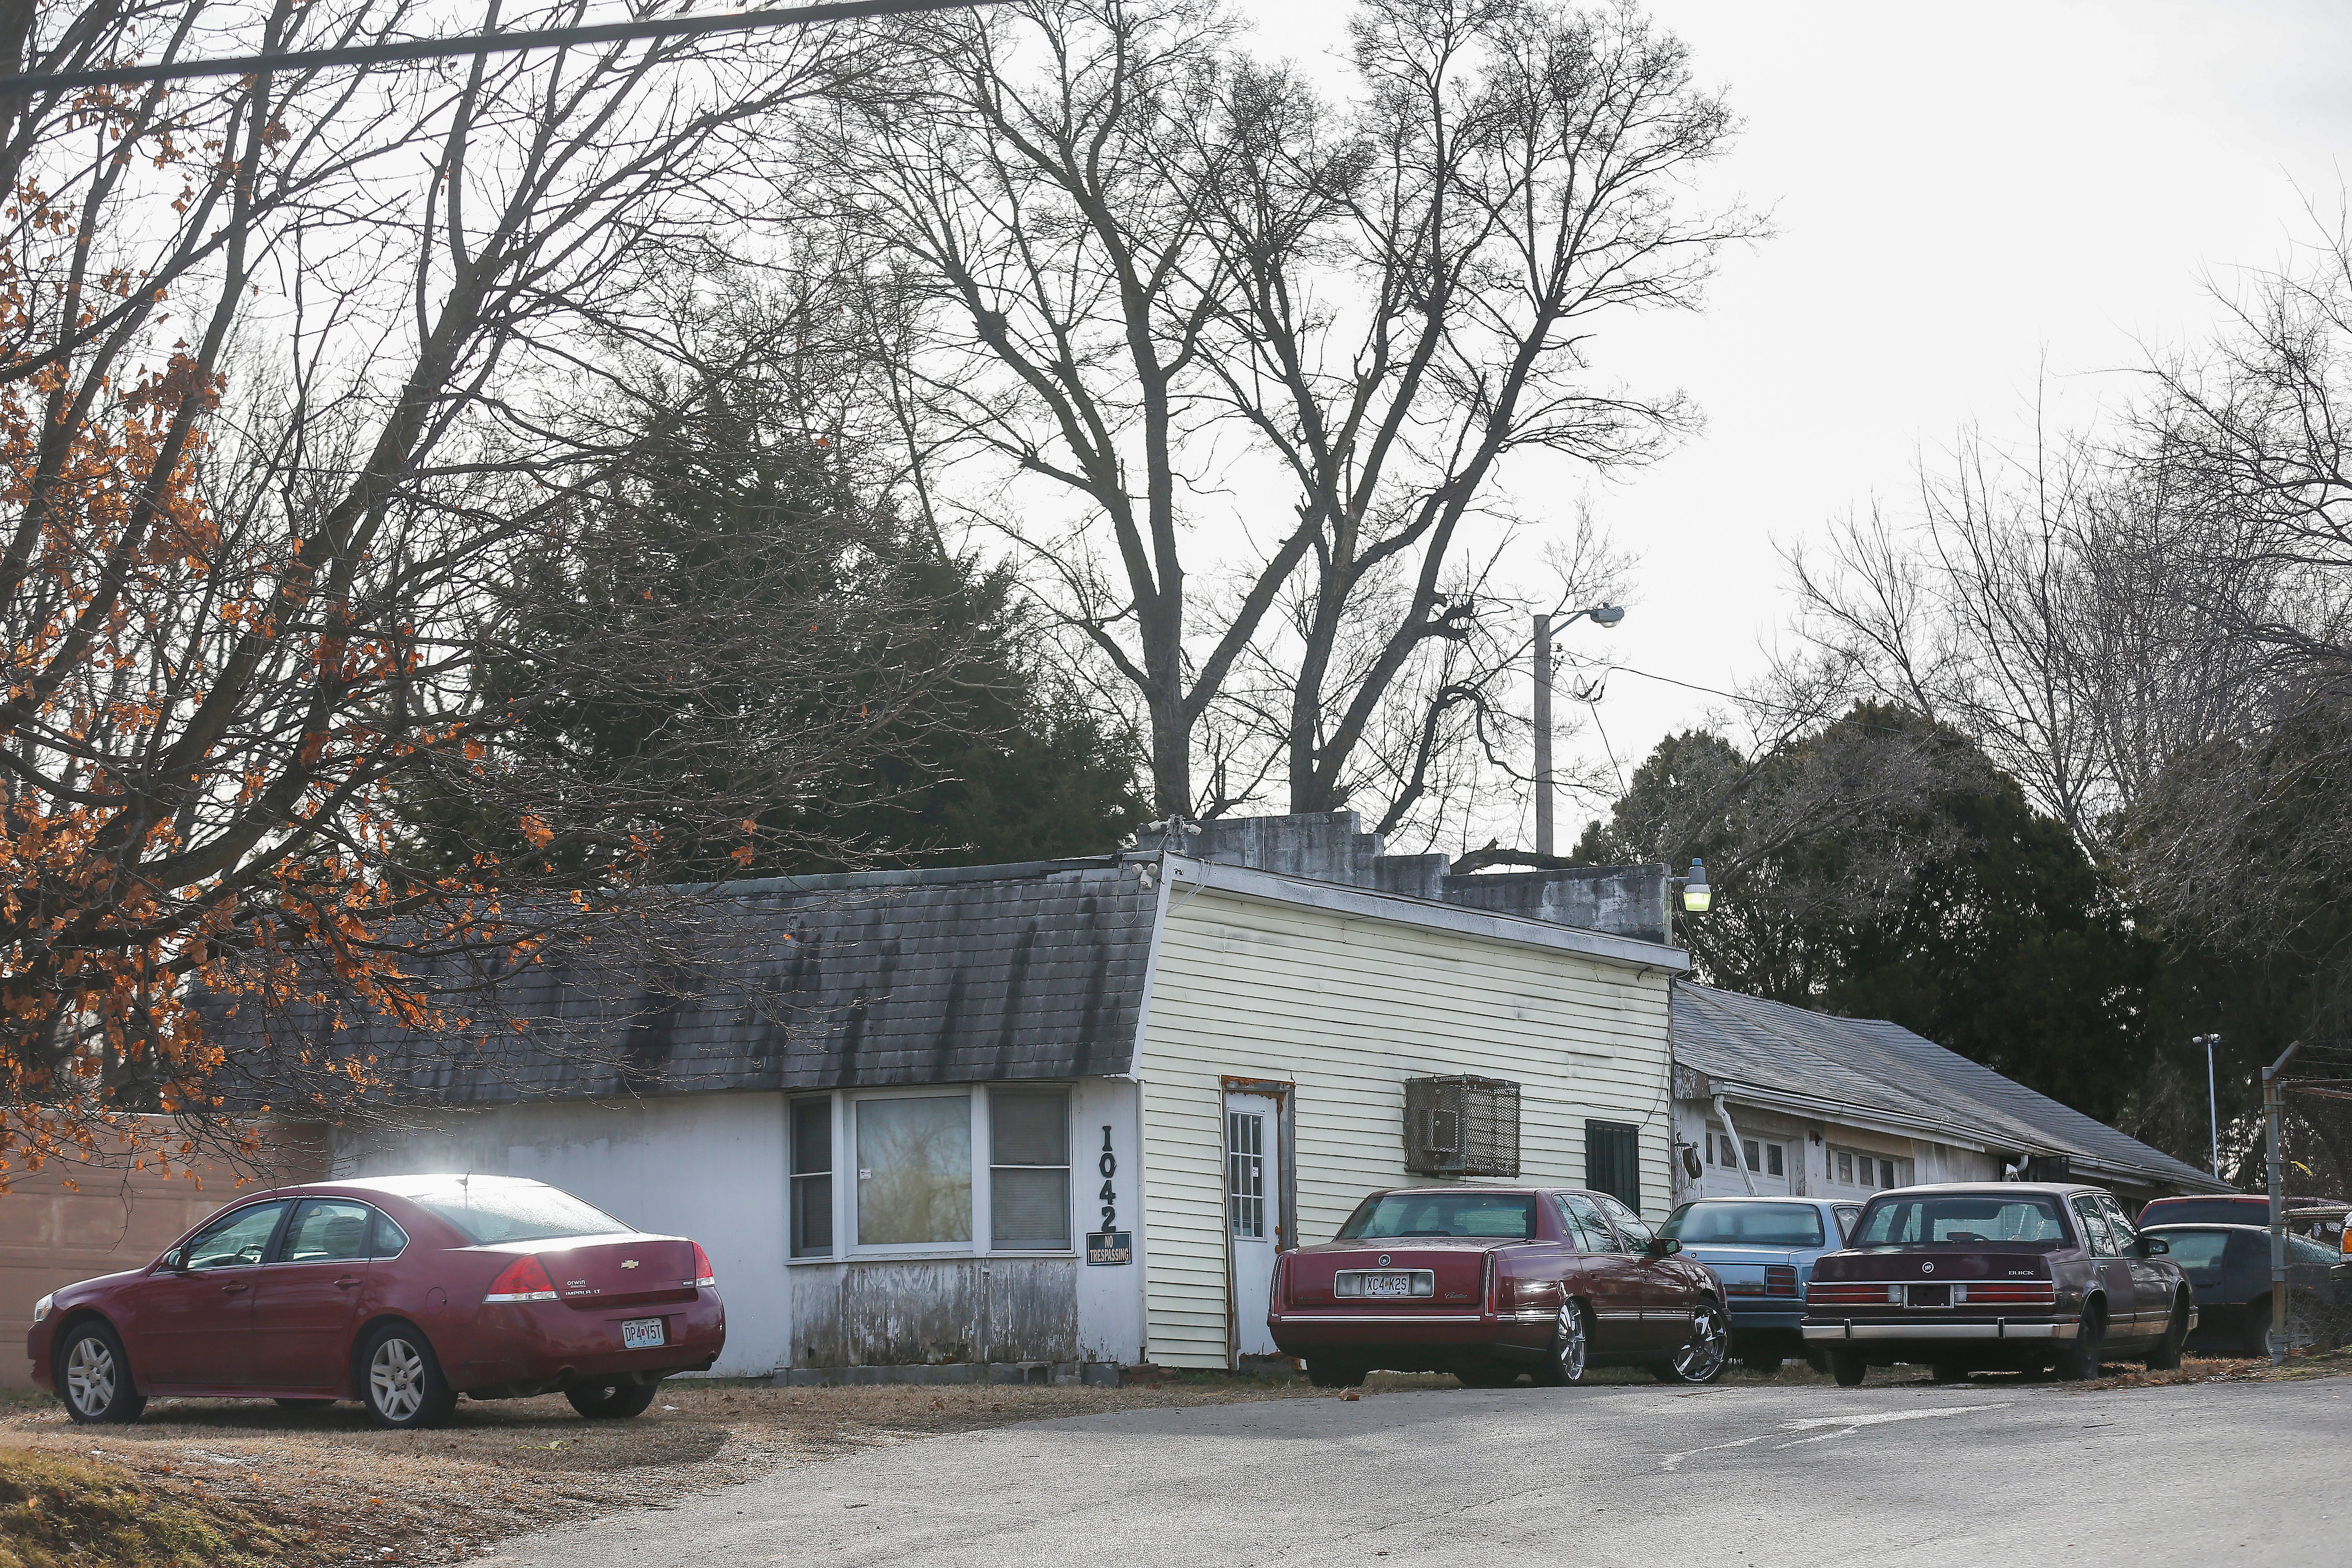 Police say eight people were shot Dec. 23 during a party at 1042 W. College St.